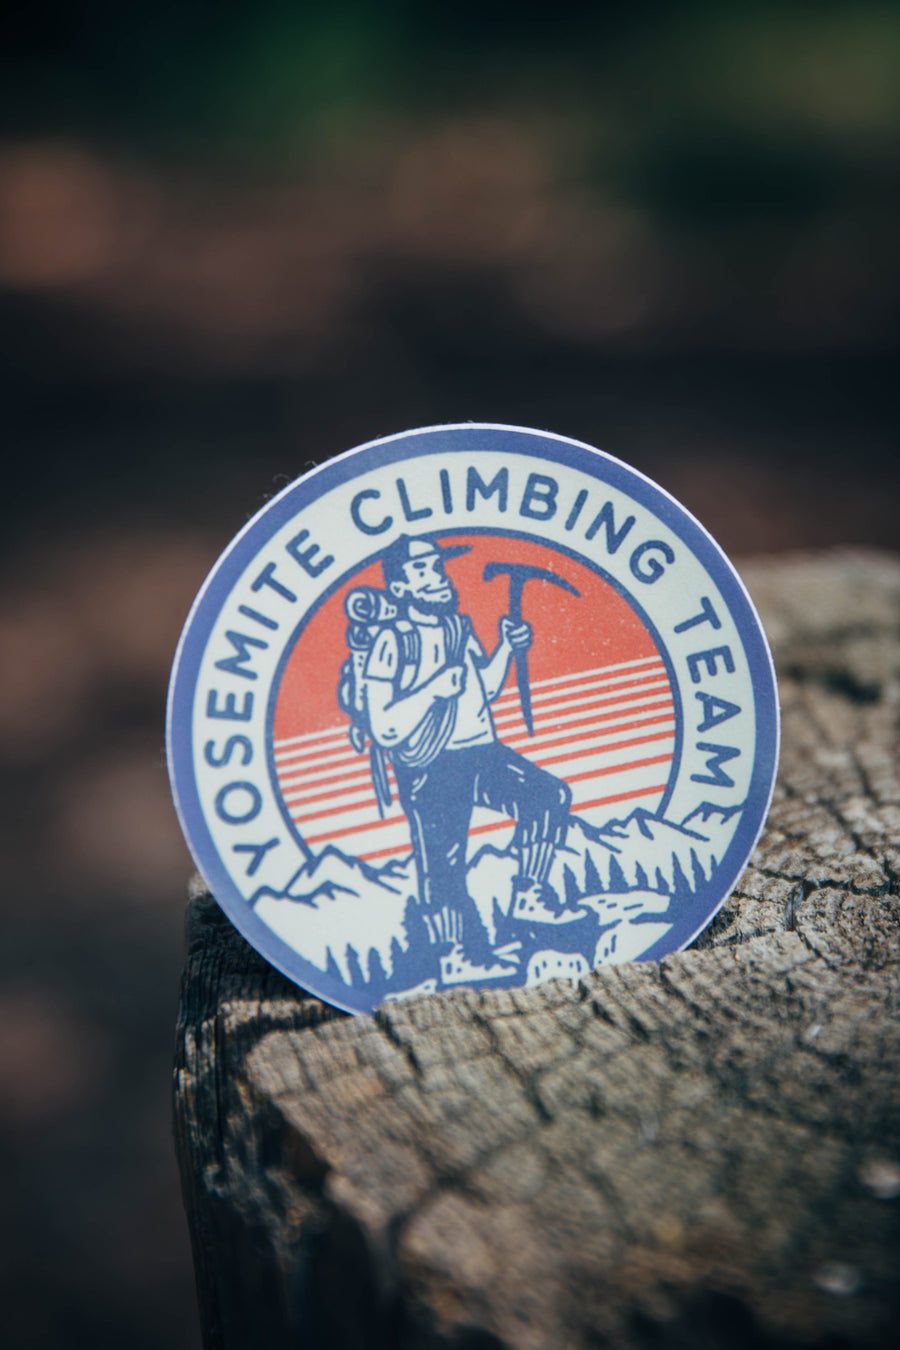 Yosemite Climbing Team Sticker - Wondery